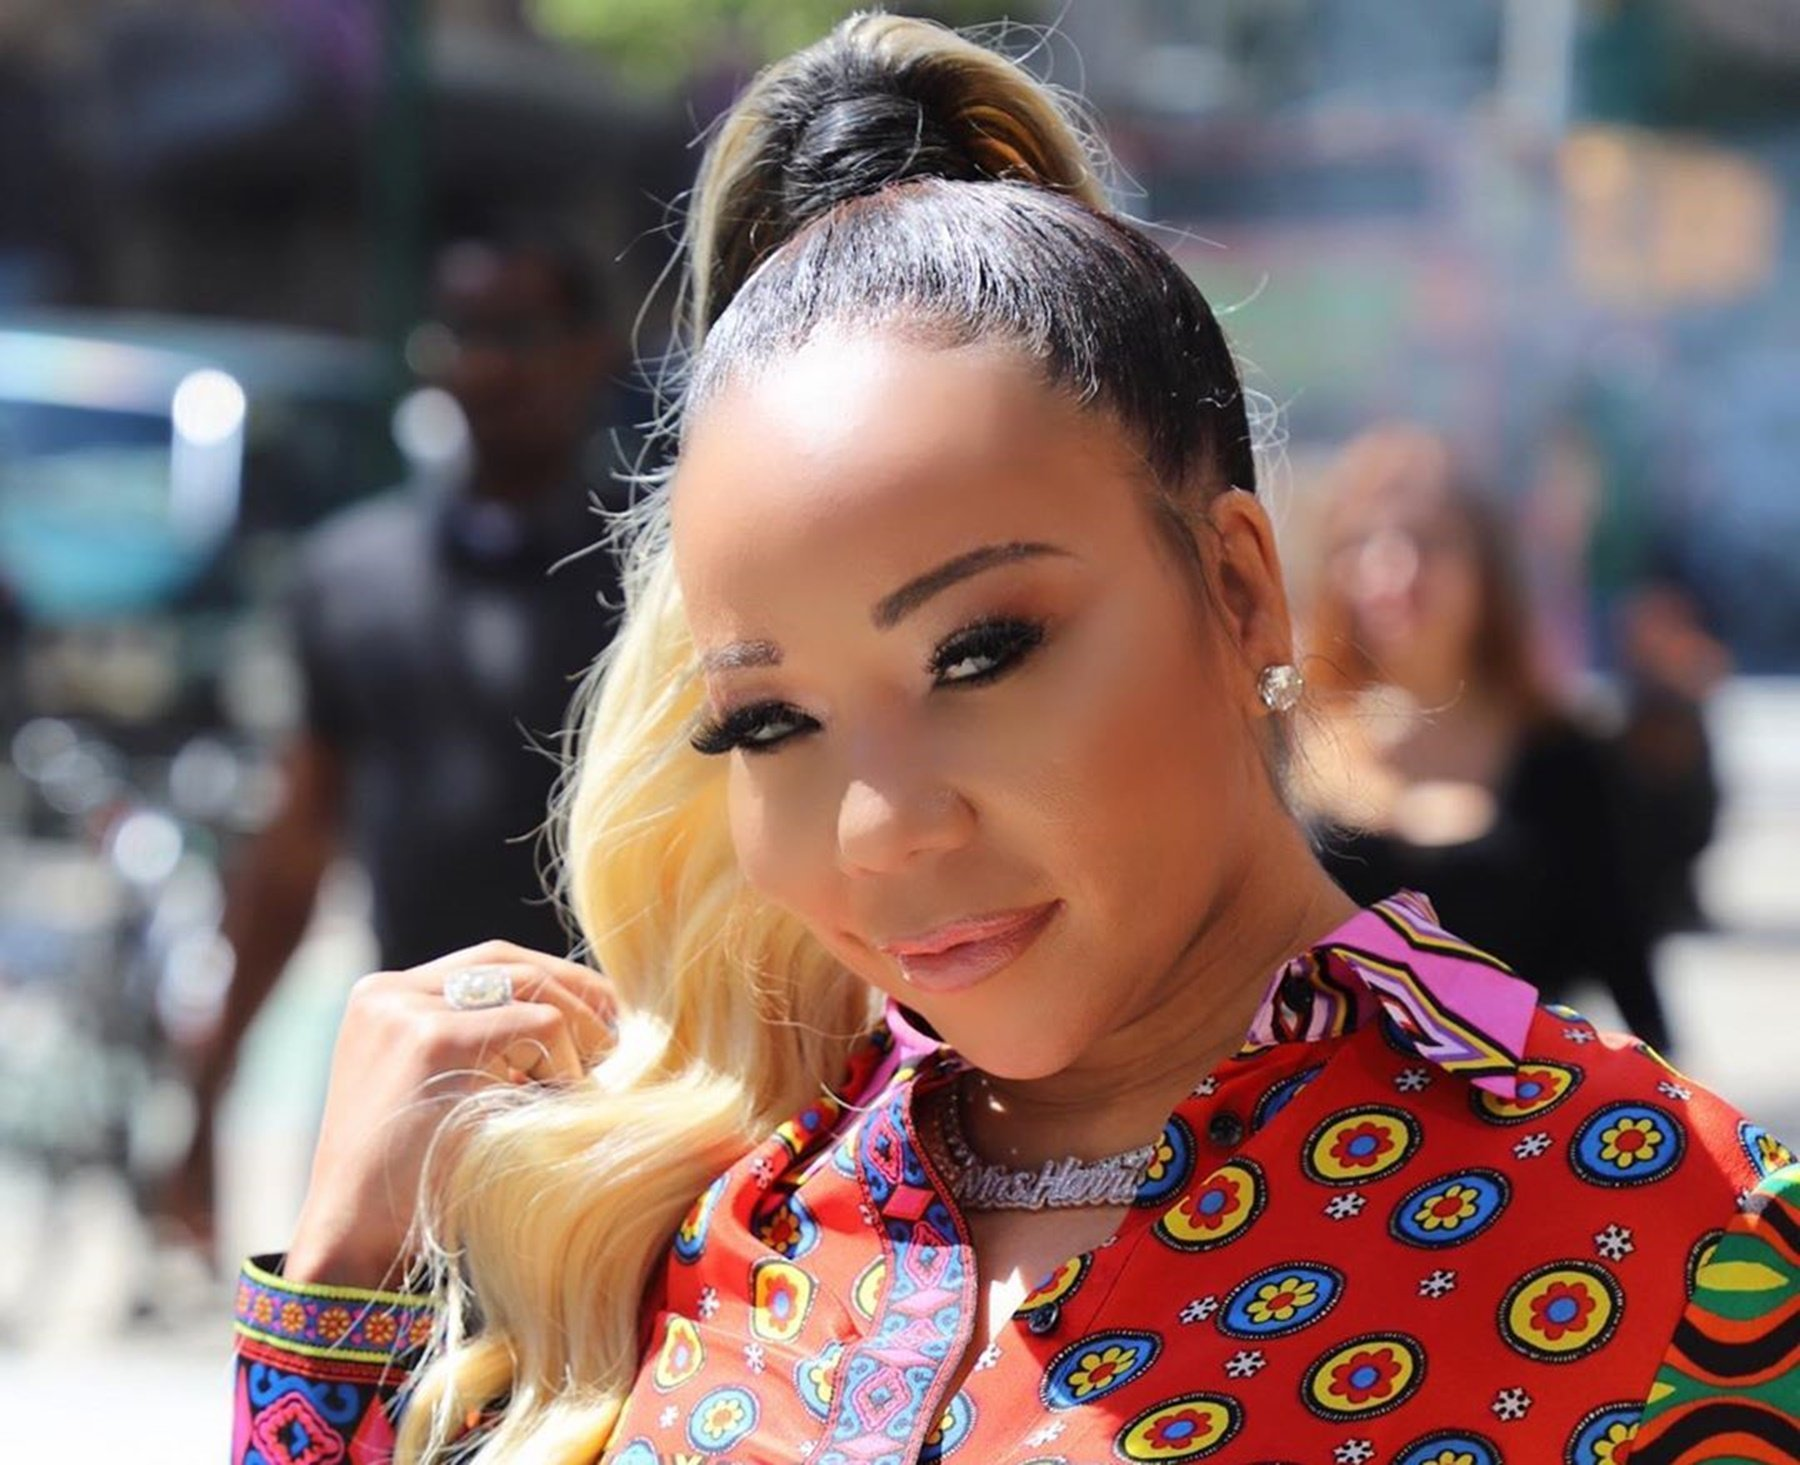 Tiny Harris Is Back With Another Participant For Her Challenge - See The Video